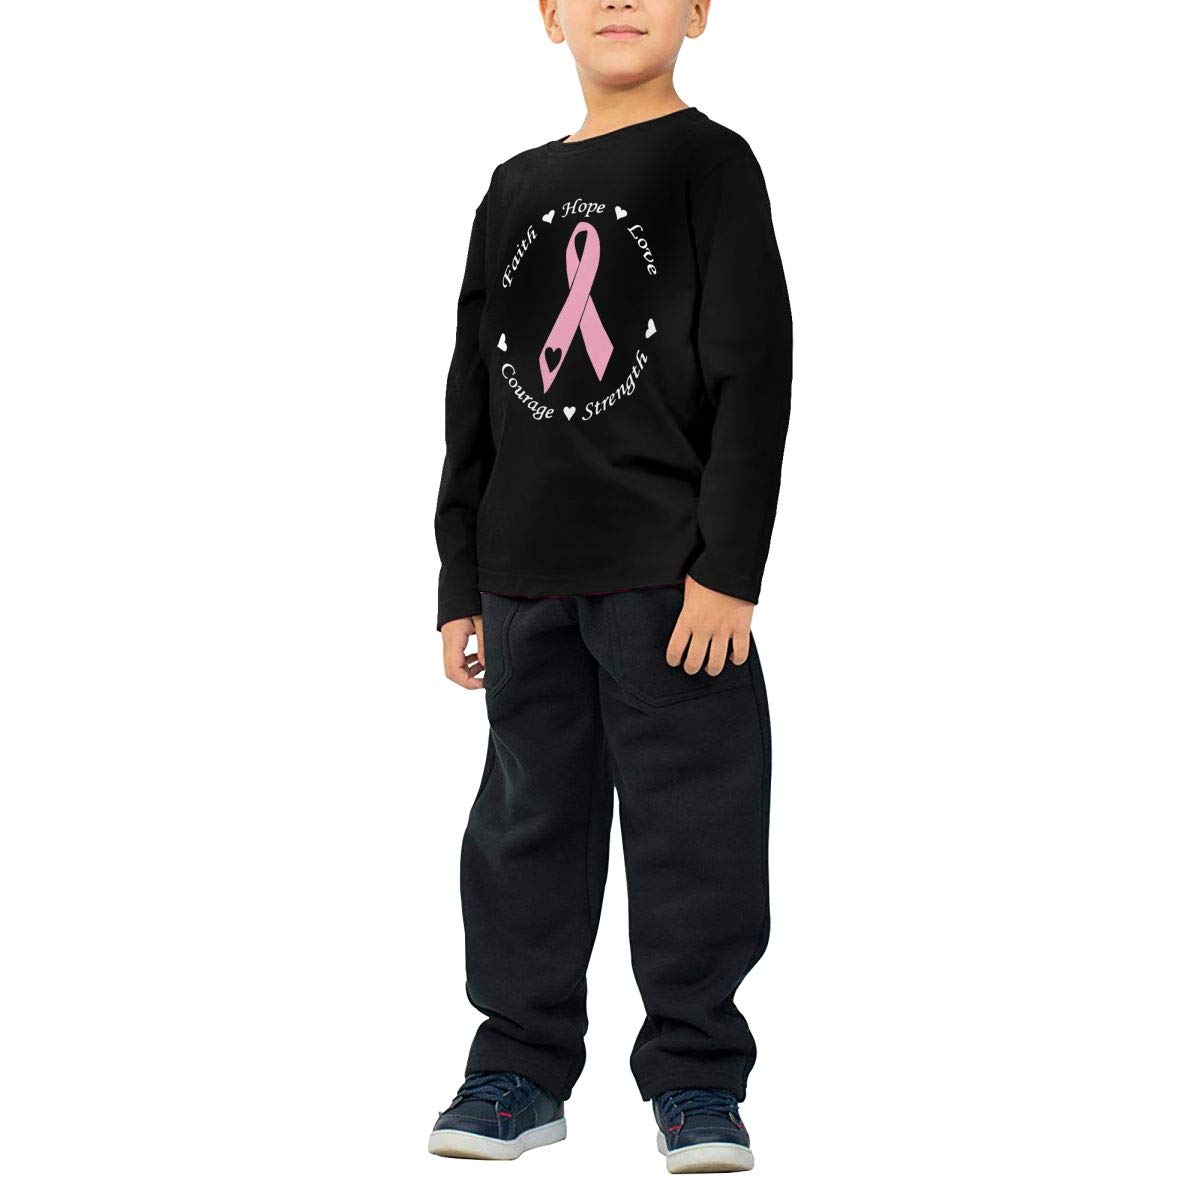 Newborn Kids Breast Cancer Love Faith Hope Strength Printed Long Sleeve 100/% Cotton Infants Clothes